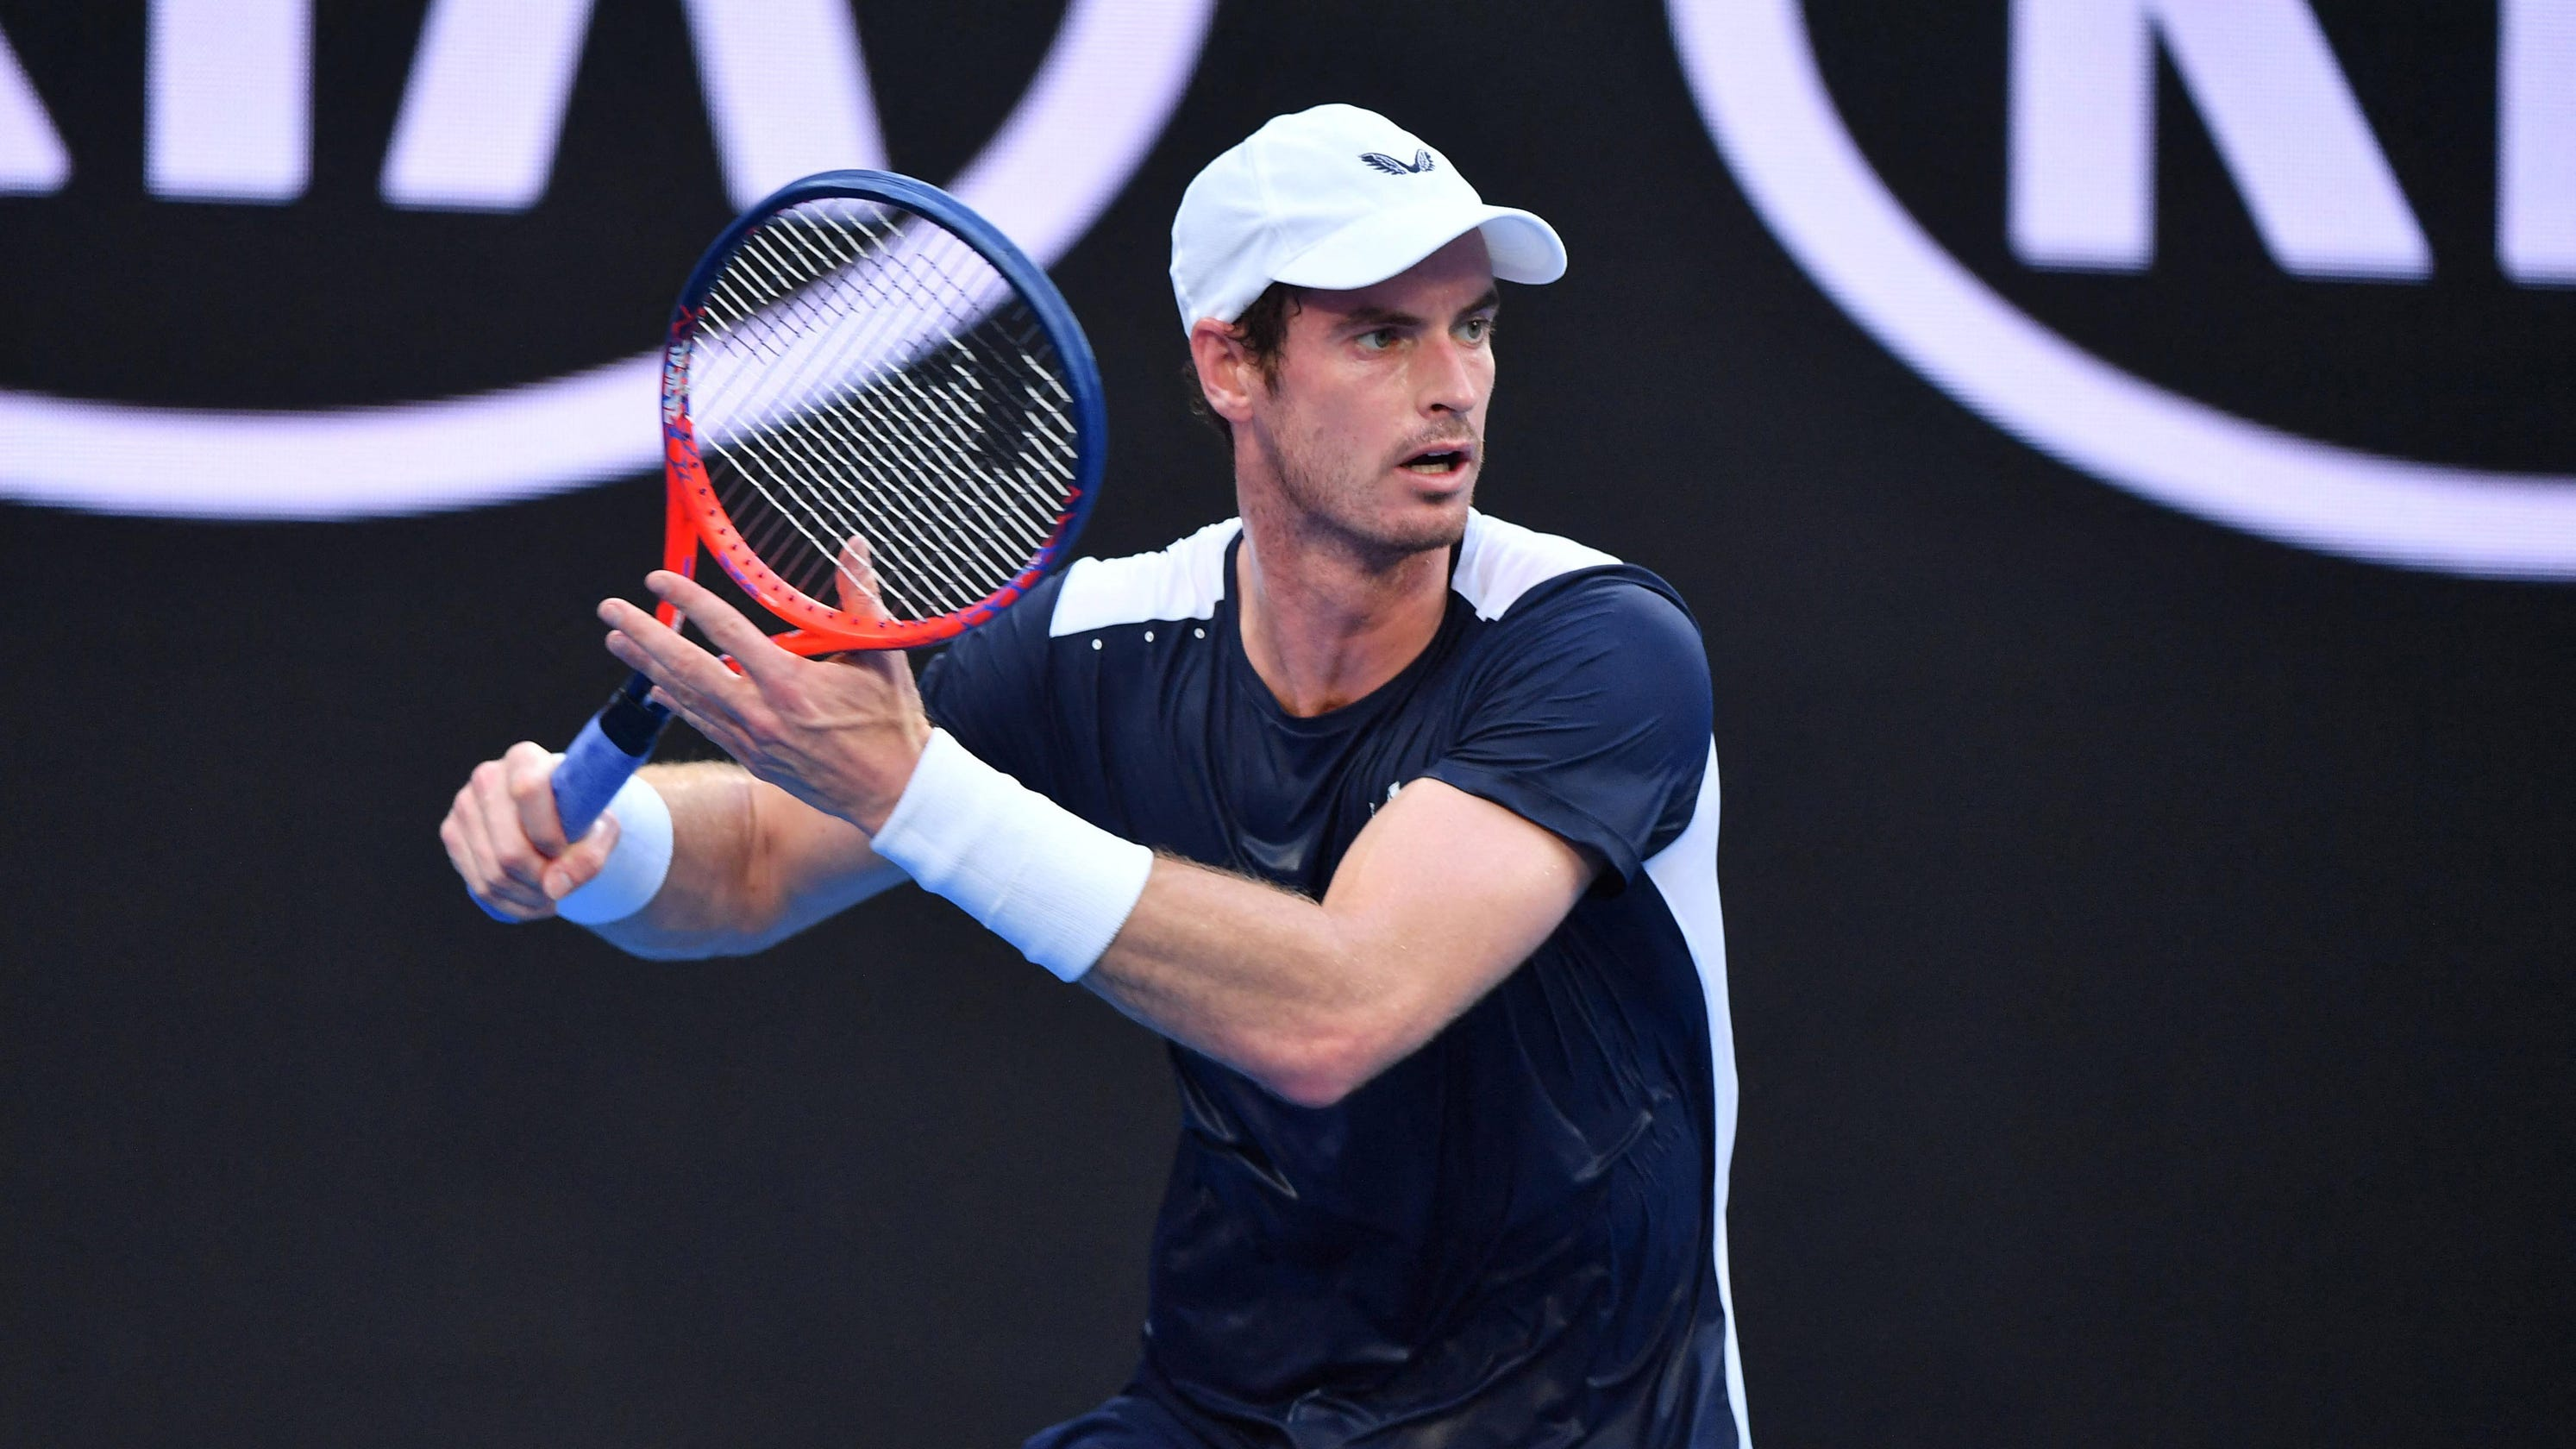 Andy Murray set for ATP Tour return at Flushing Meadows